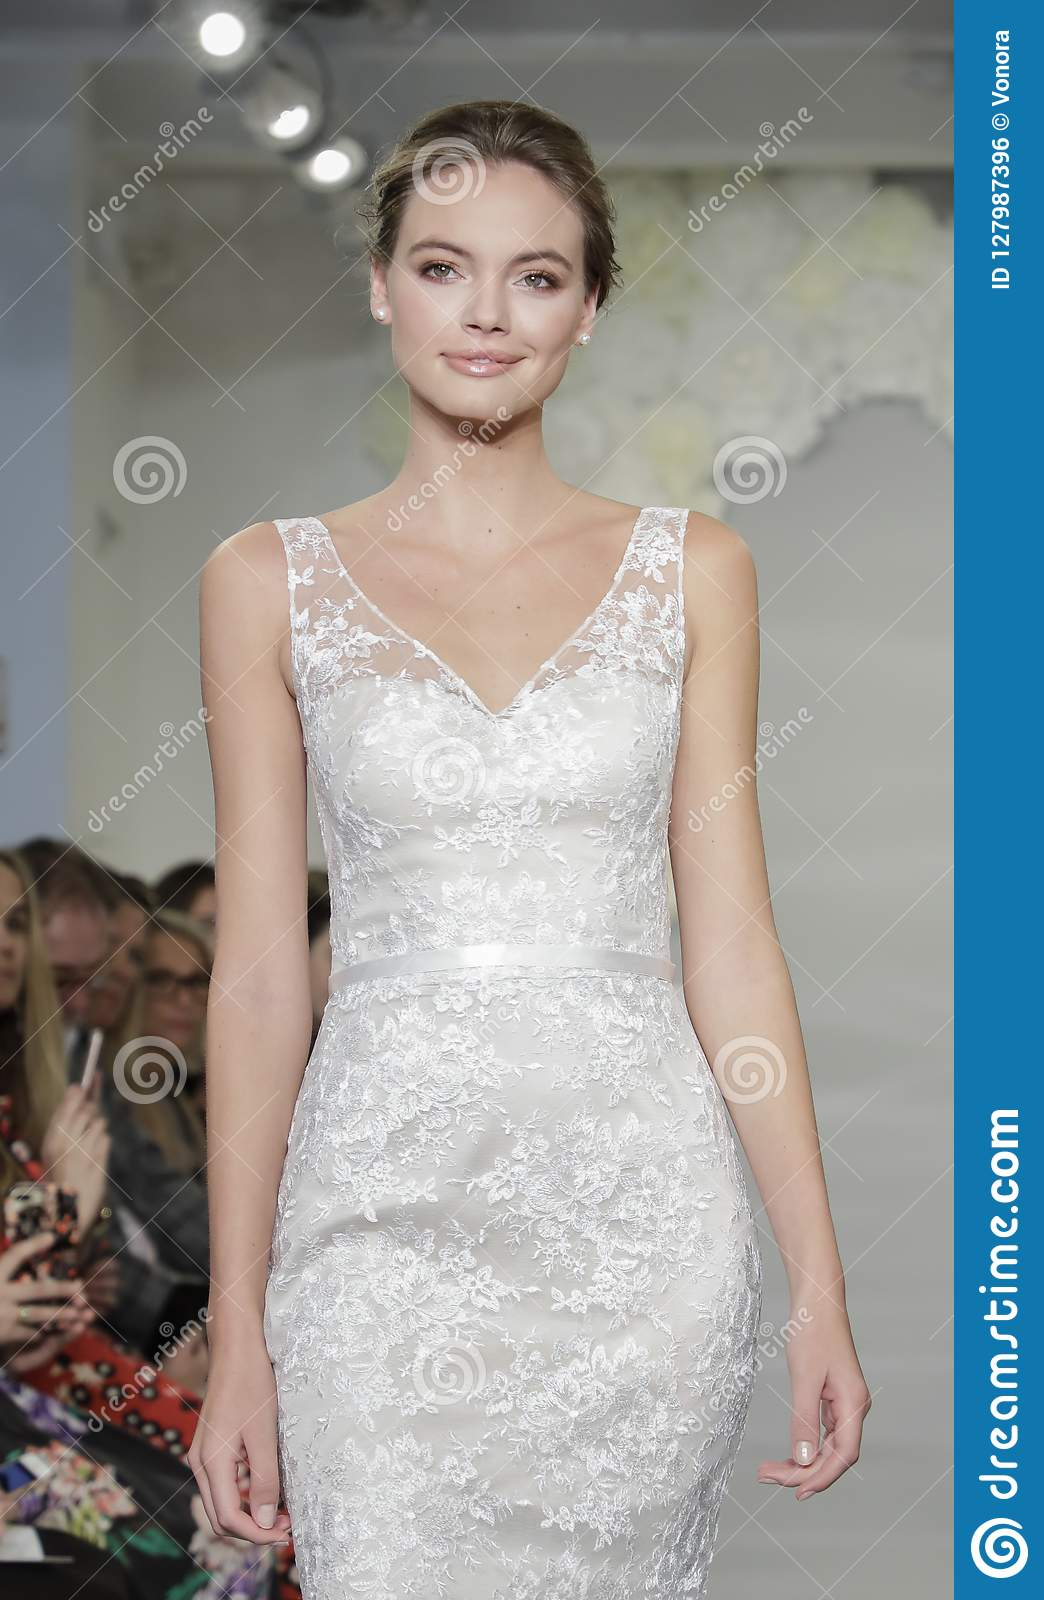 manhattan designers mobel NEW YORK, NY, USA - October 4, 2018: A model walks the runway at the Theia  runway show during New York Bridal Week at the Theia Showroom, Manhattan